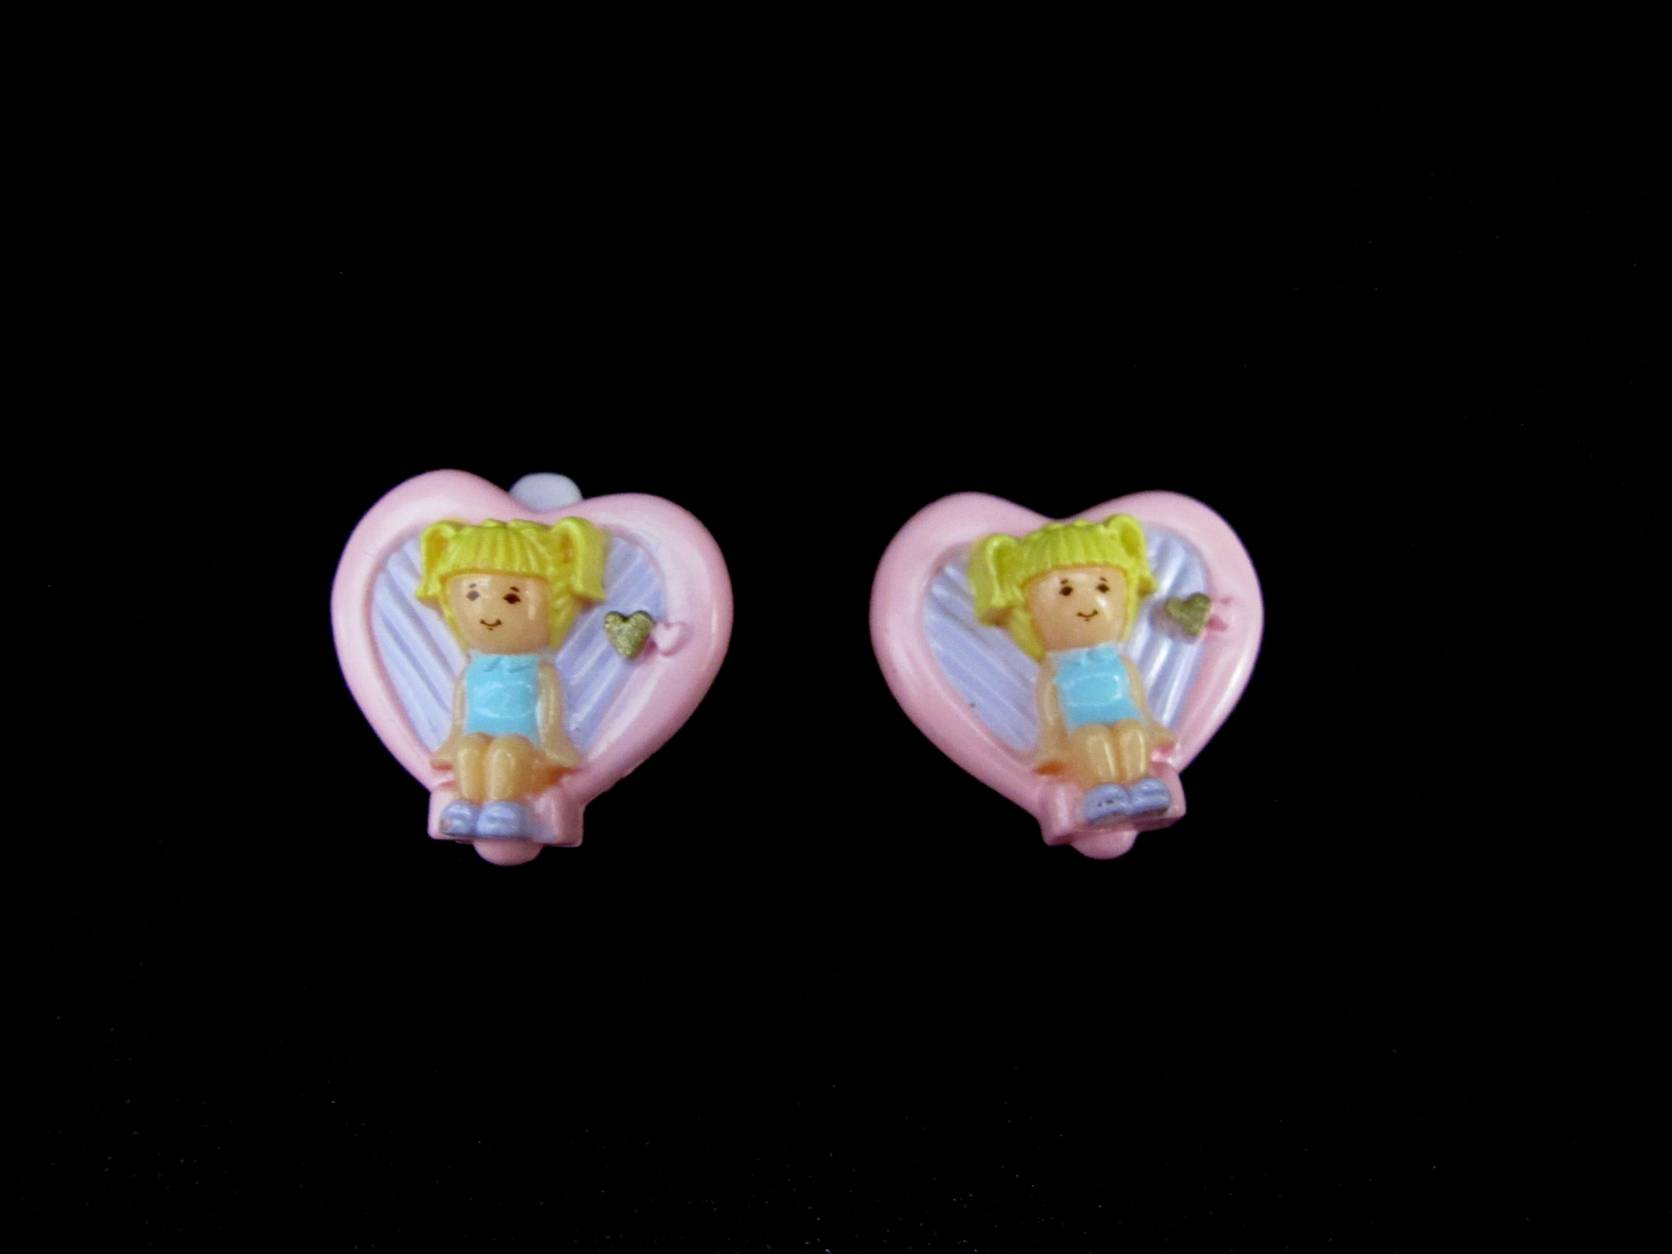 1991 Earring Case Tiny Tina Polly Pocket